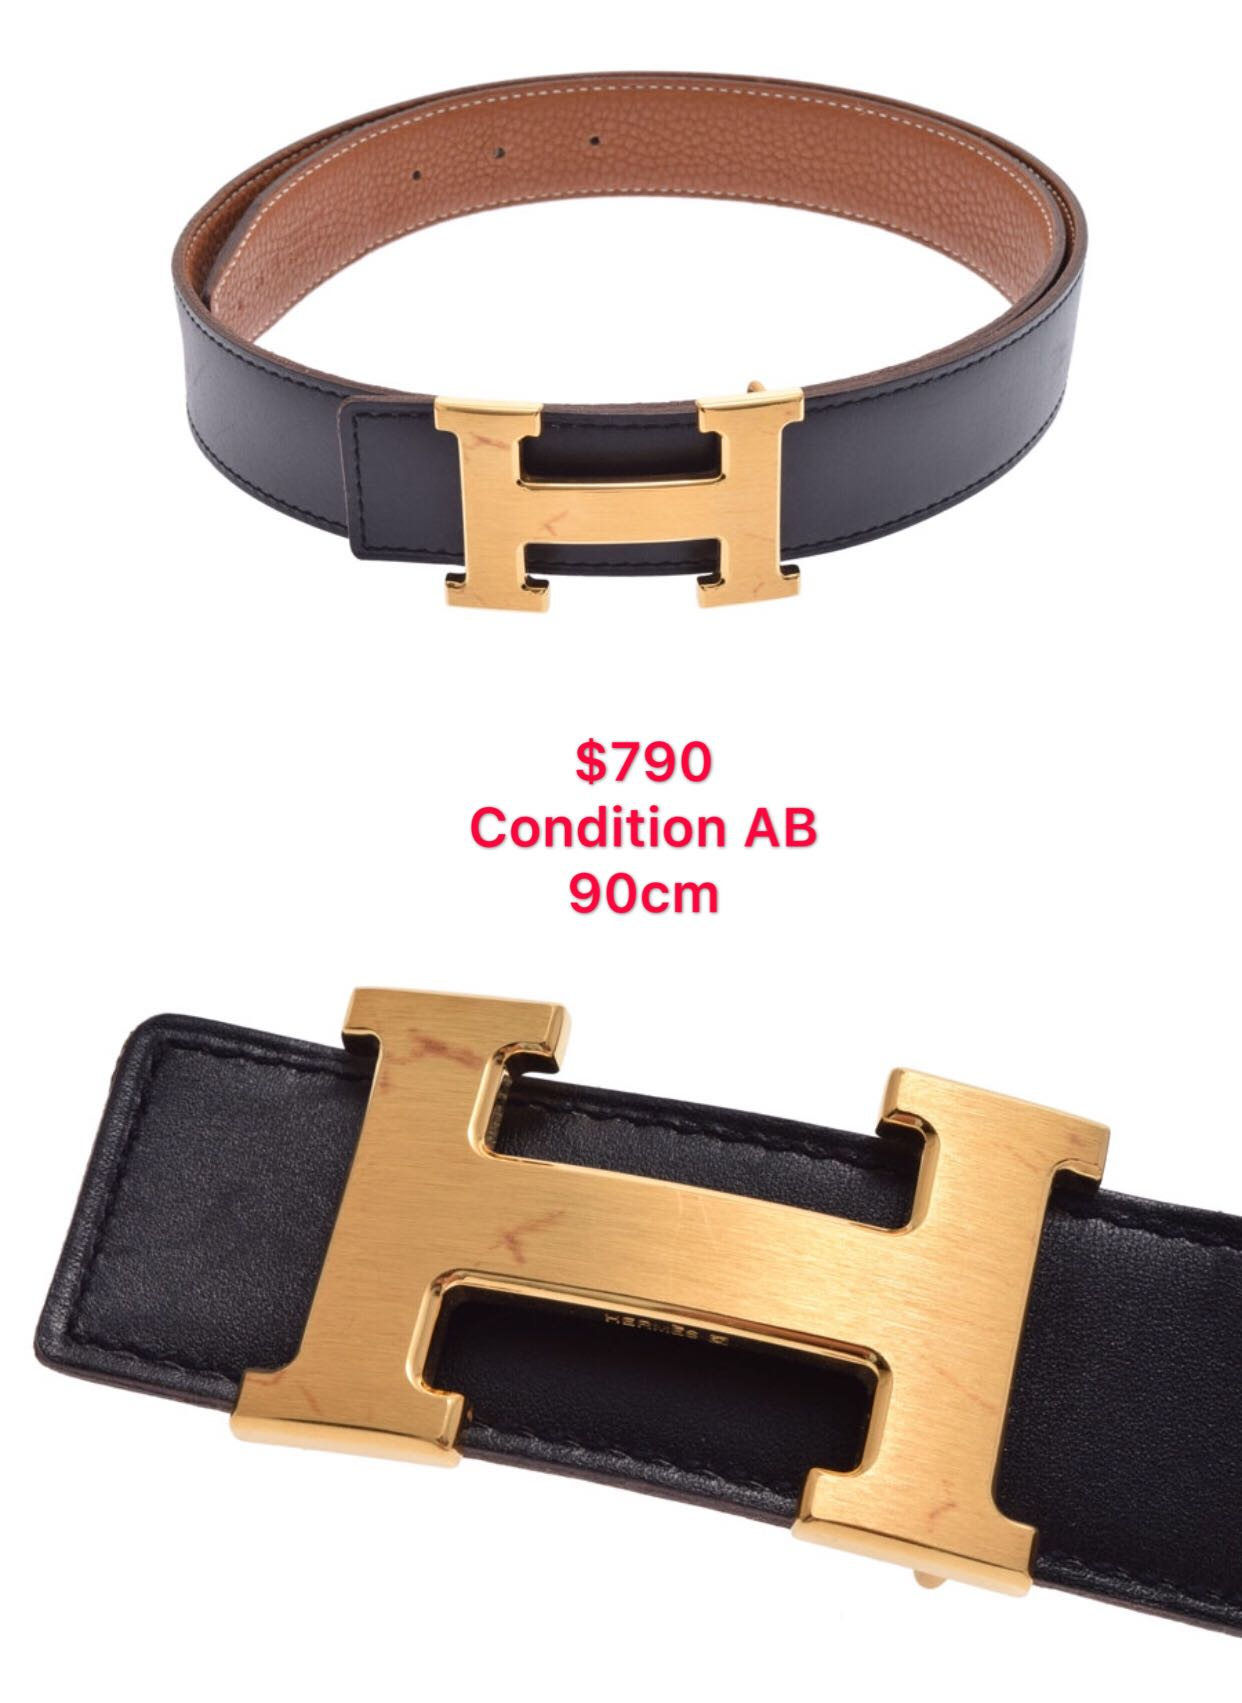 6b0c8b7d413d Home · Luxury · Accessories · Belts. photo photo photo